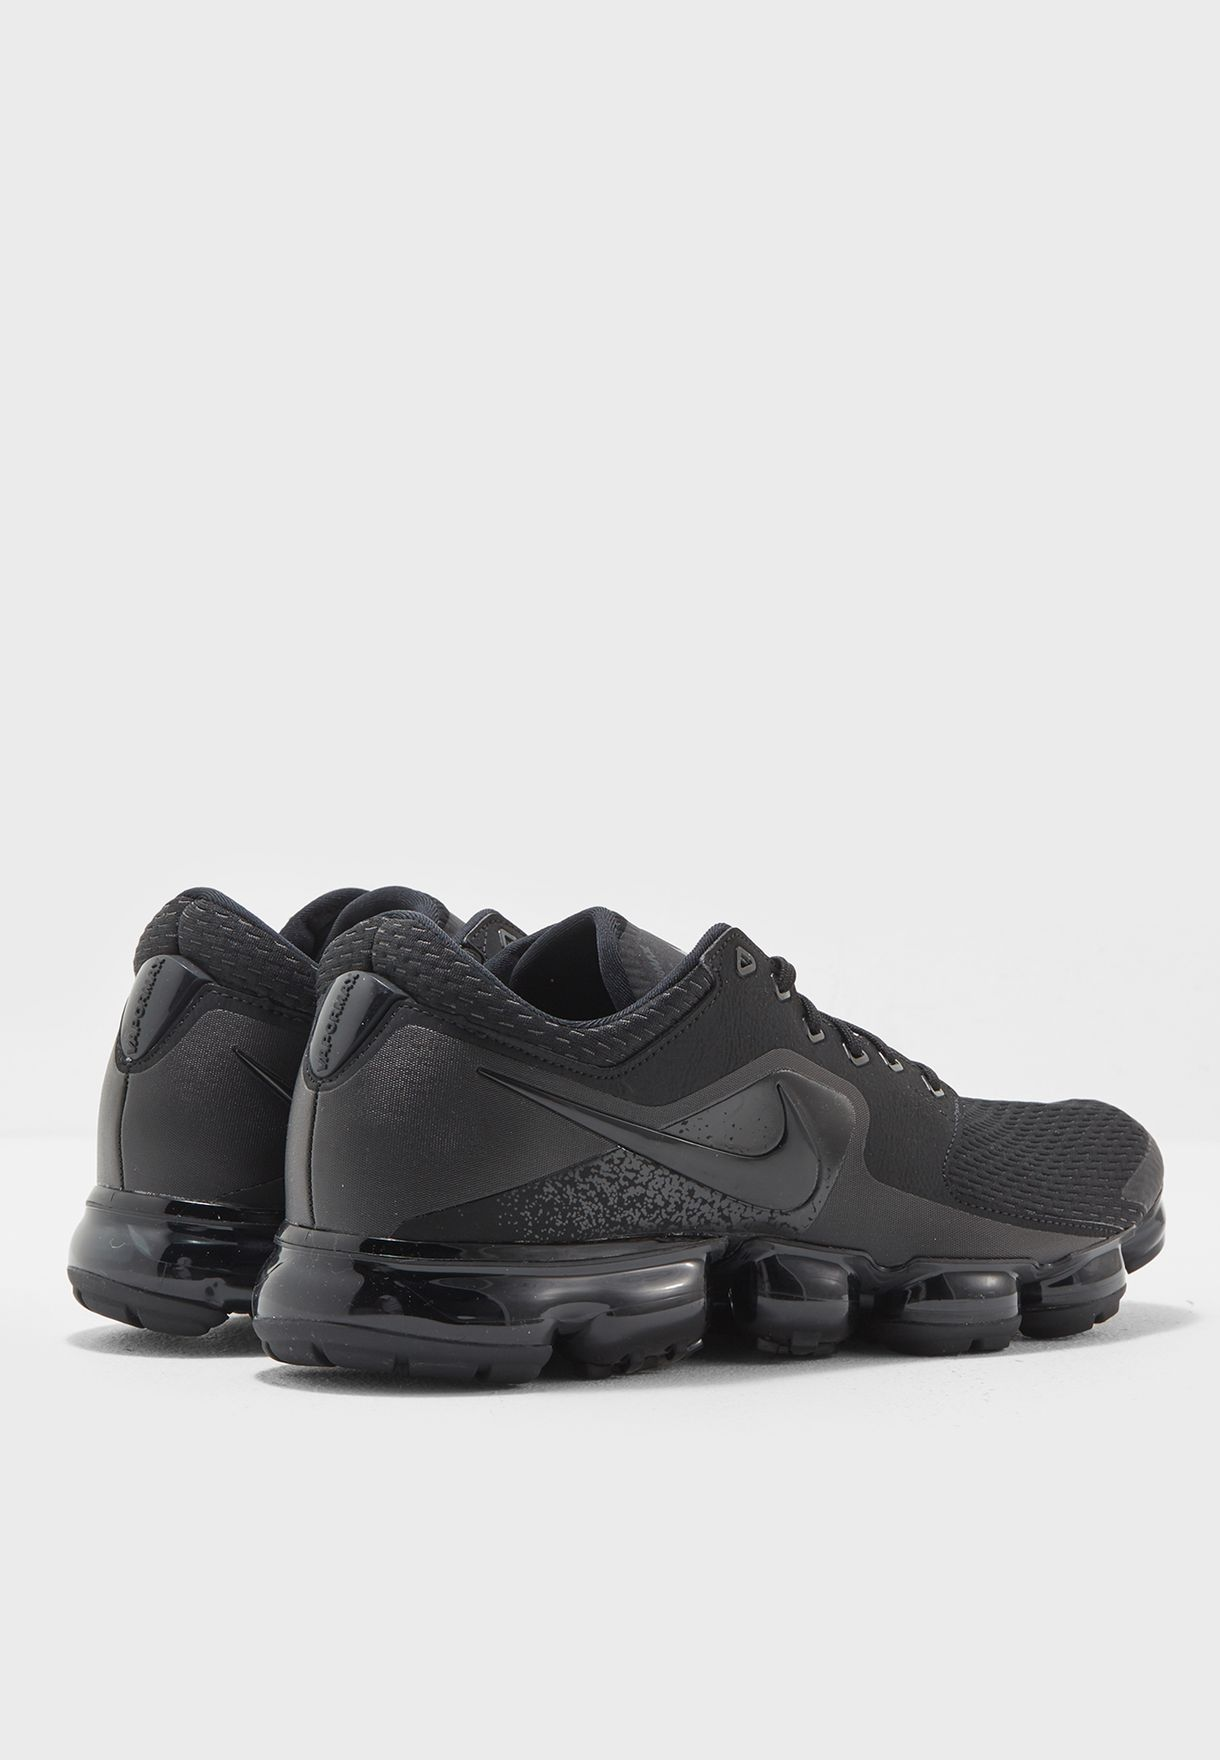 d10f79773c3 greece nike flyknit air vapormax for sale nc c326f 6f9f9